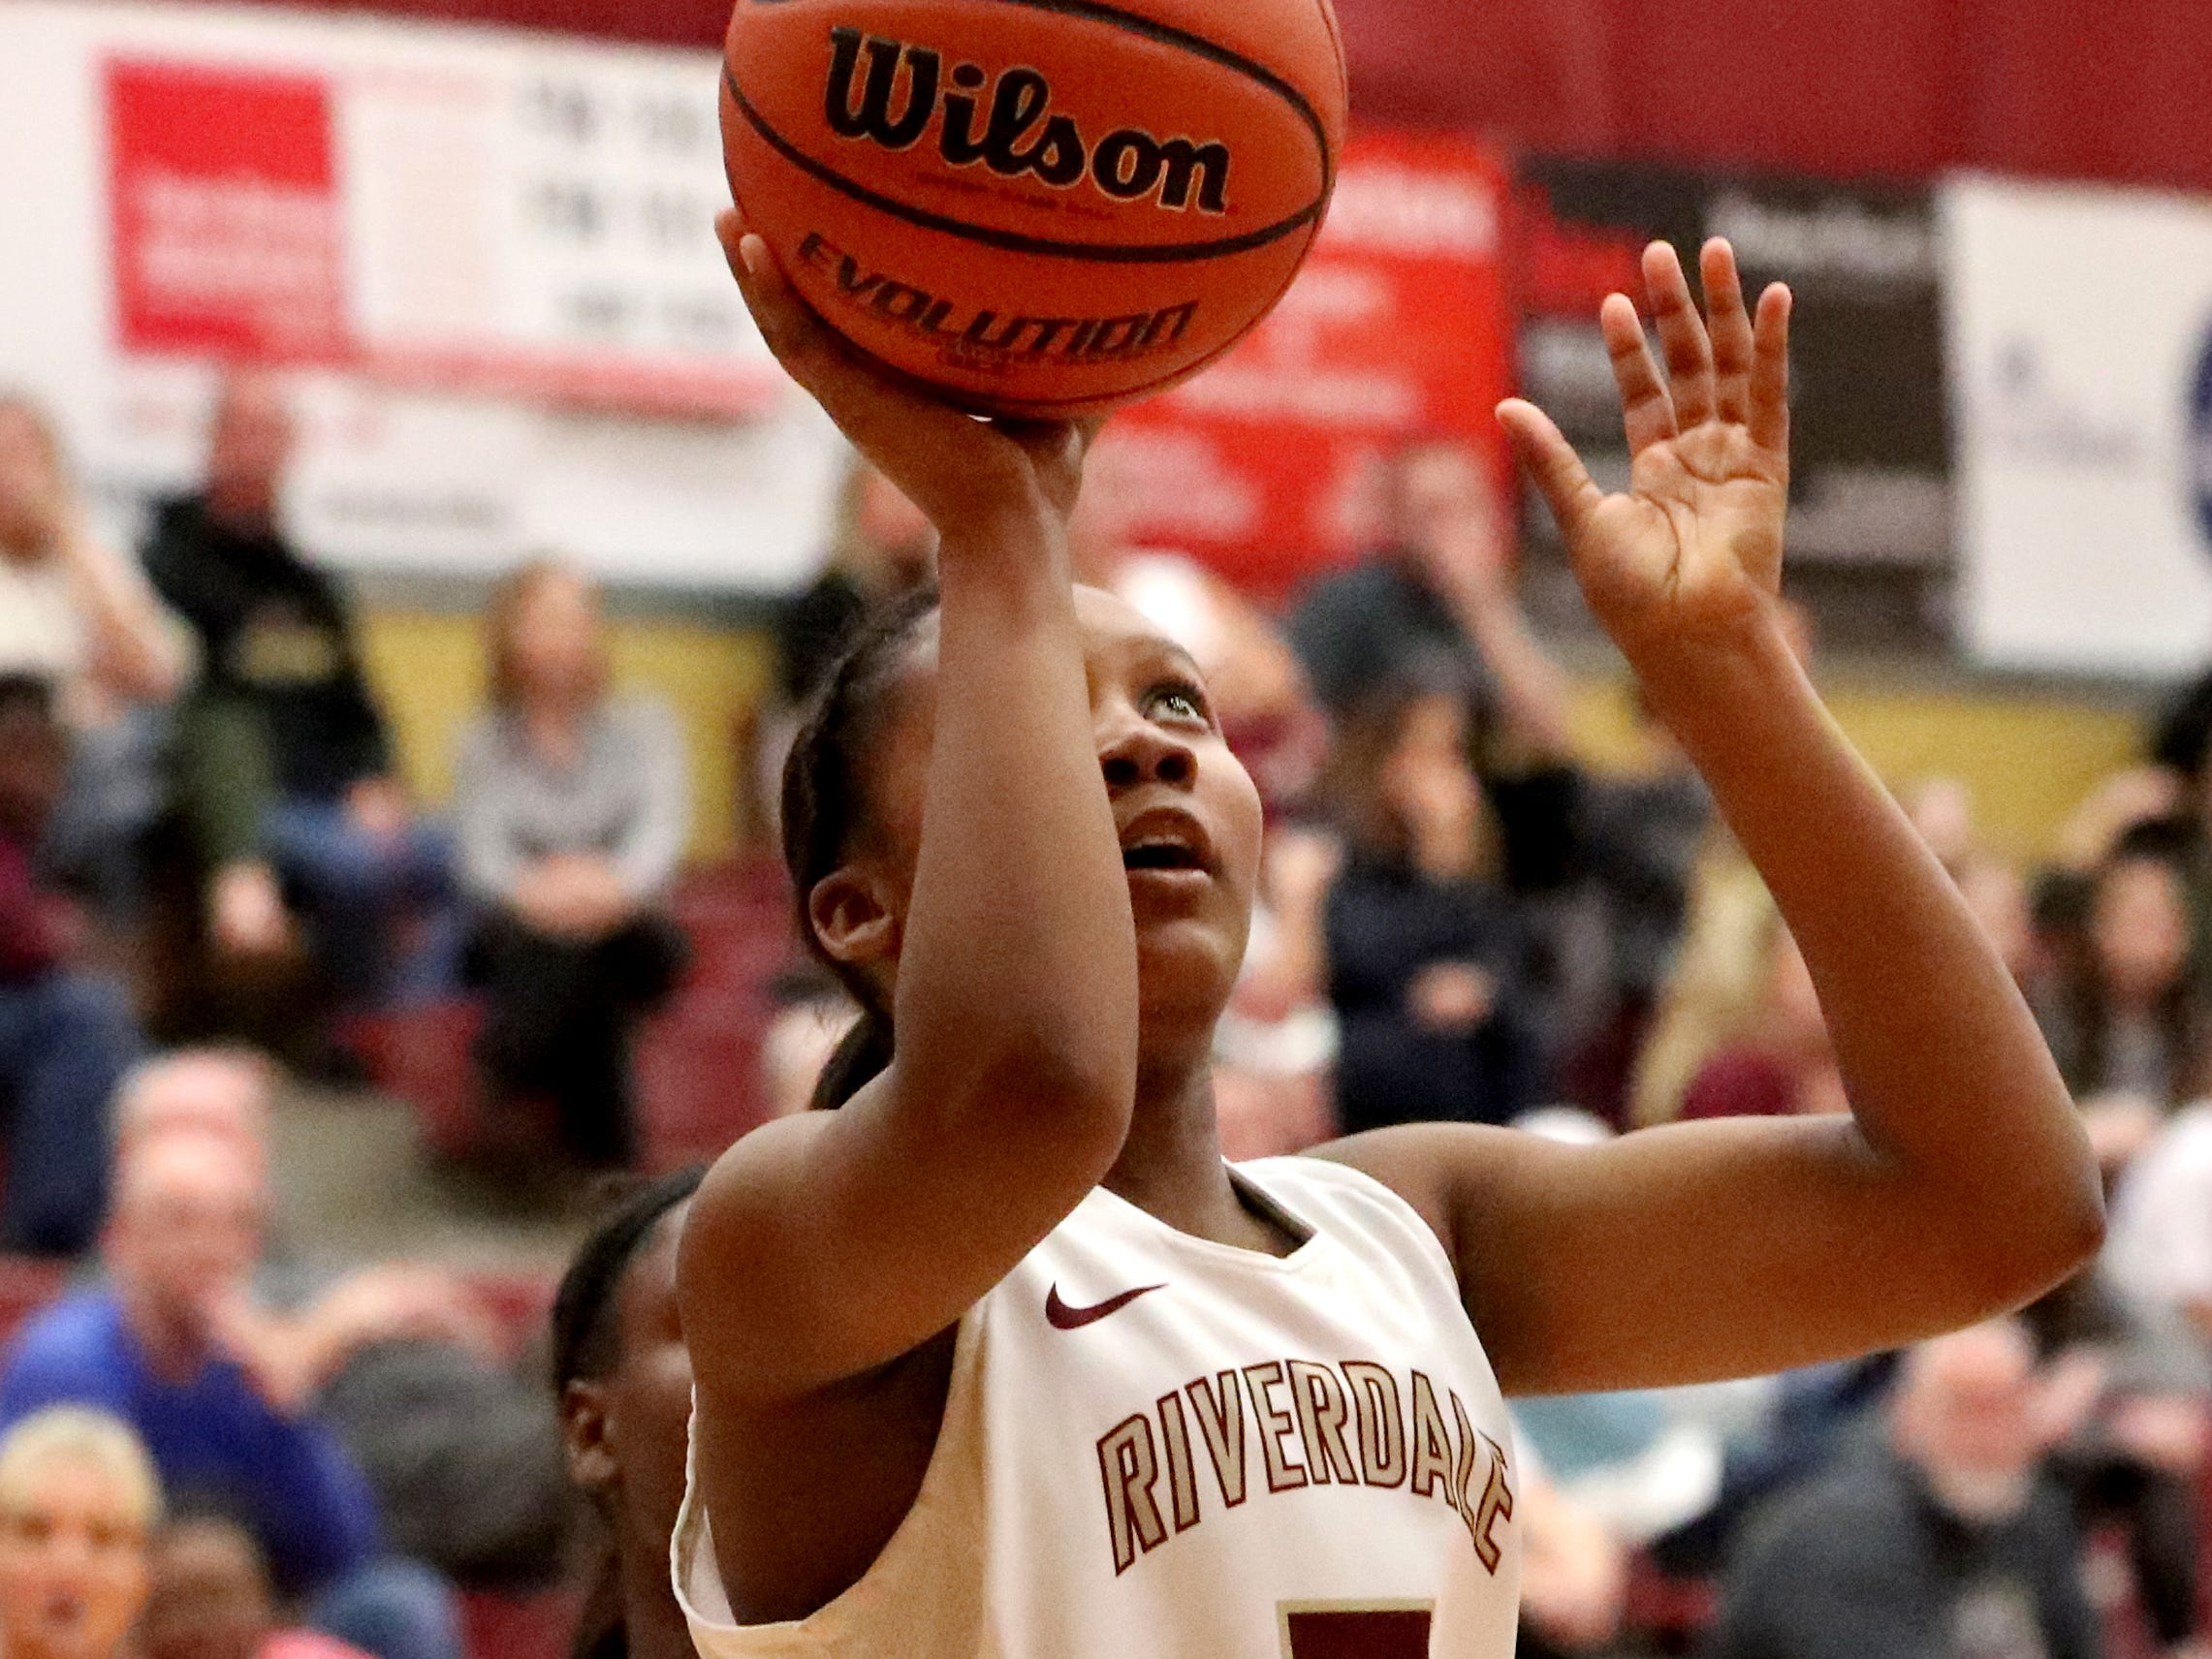 RiverdaleÕs Acacia Hayes (3) goes up for a basket during the game against Lebanon at Riverdale on Friday, Nov. 30, 2018.